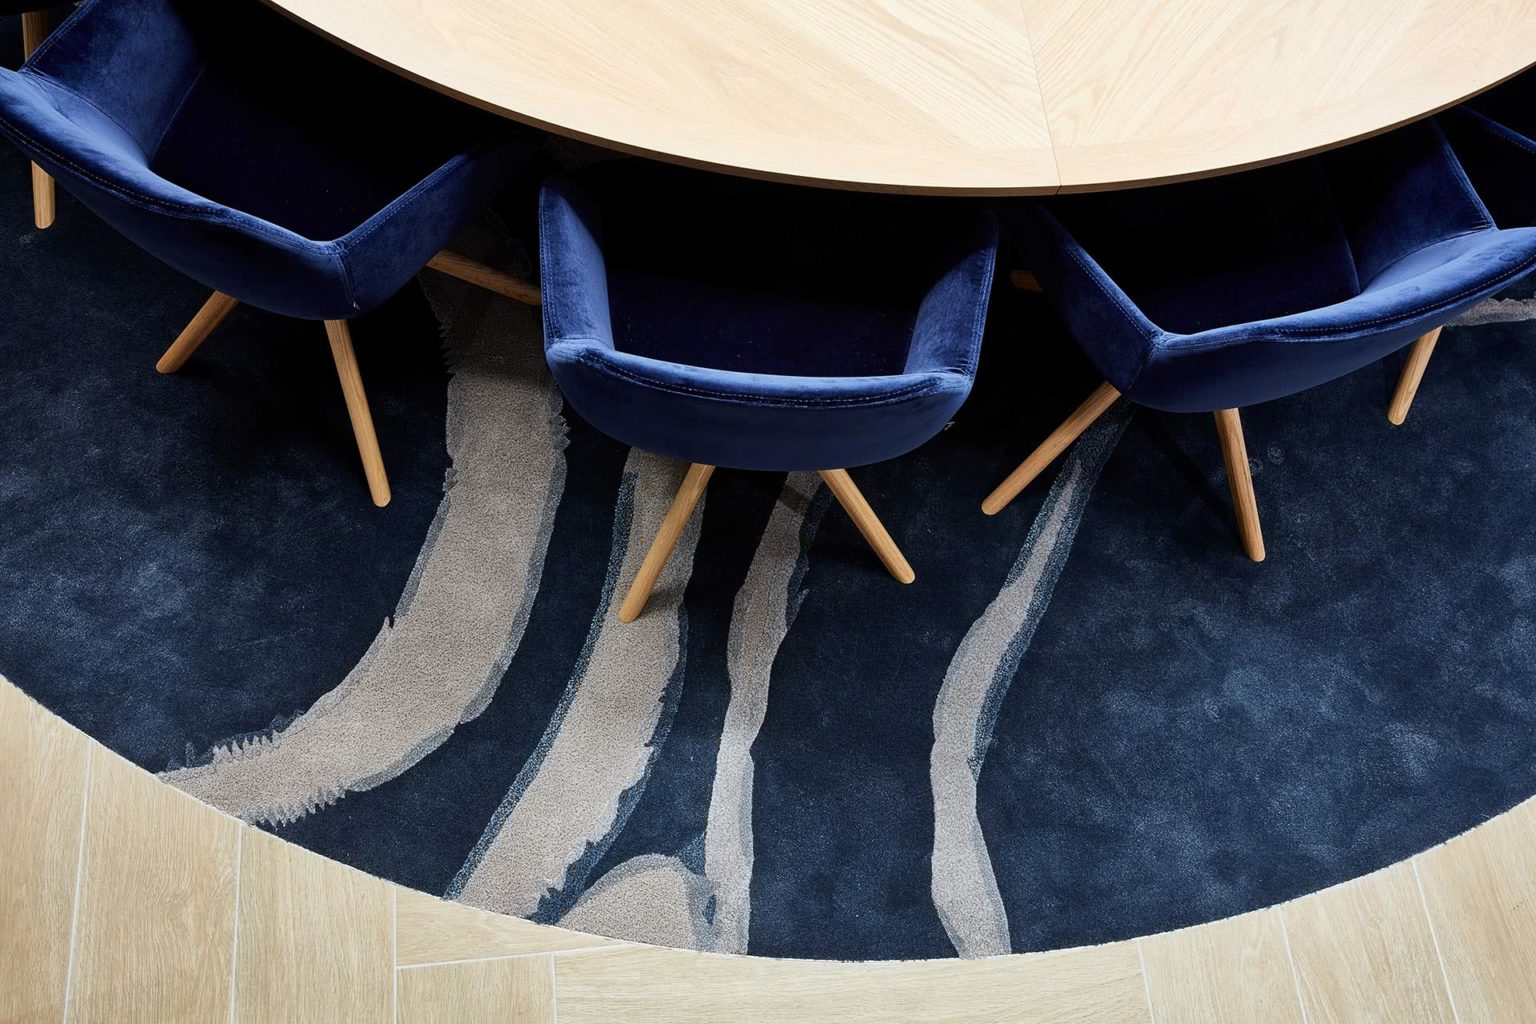 Westpac Custom Studio Collabrative with rug, table and chairs